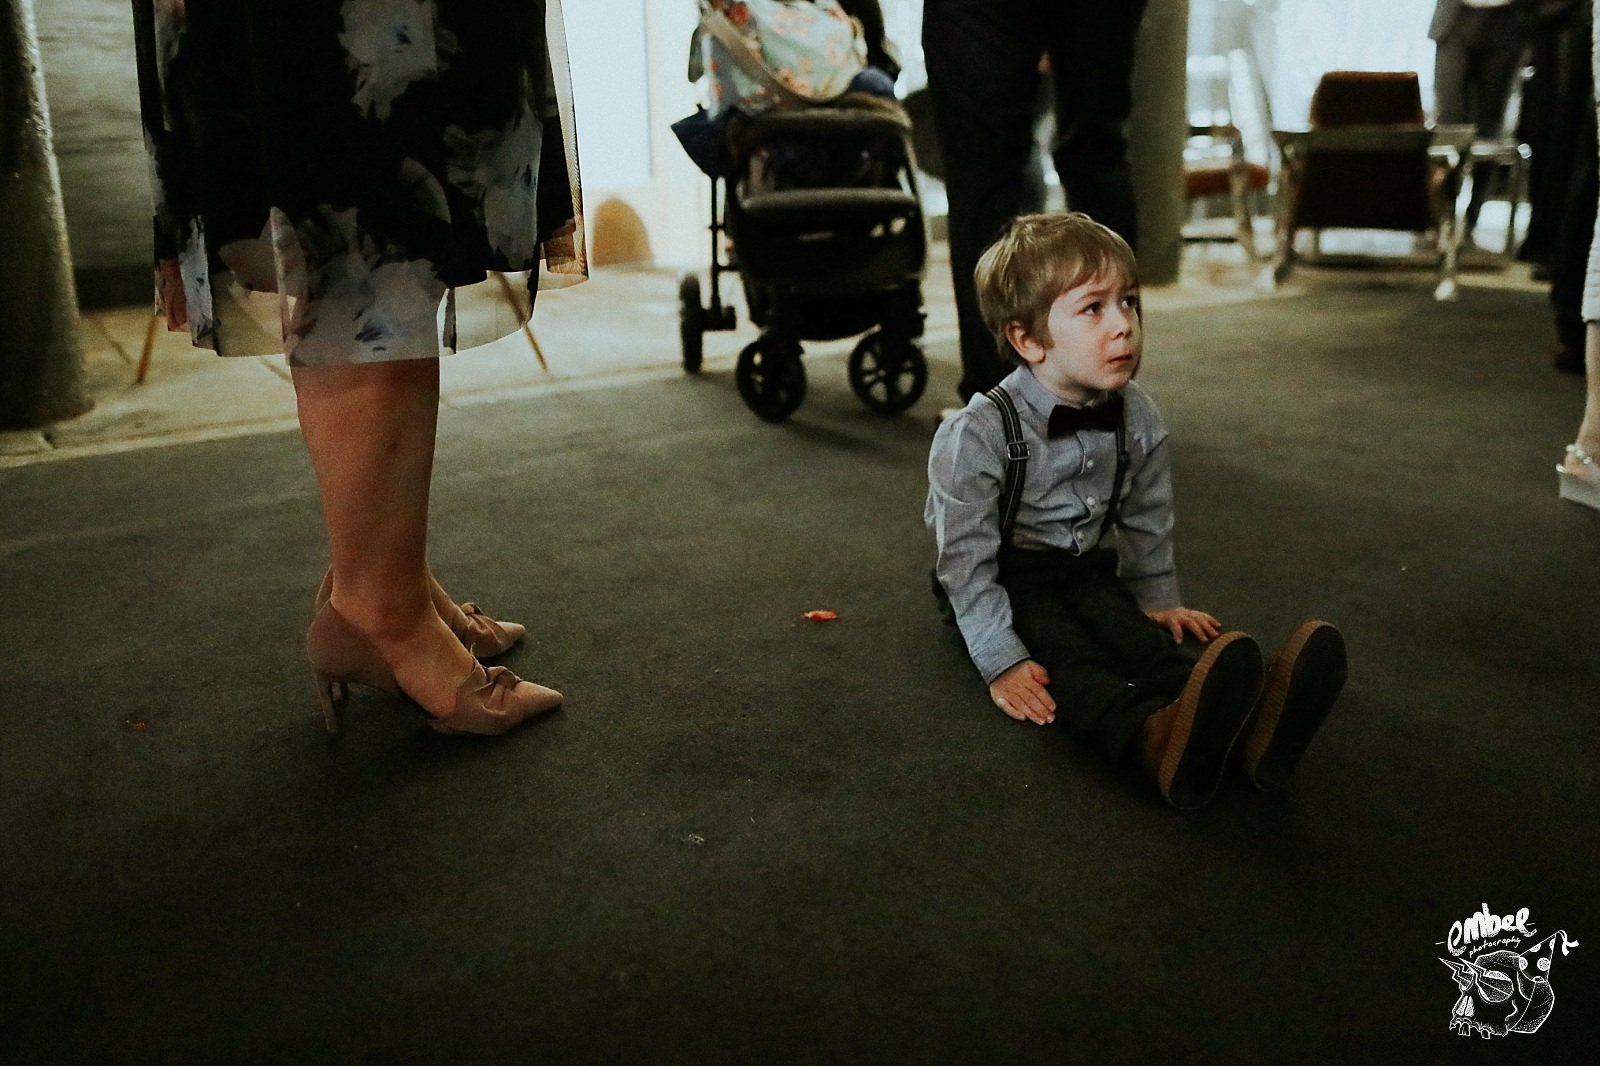 child having a paddy on the floor